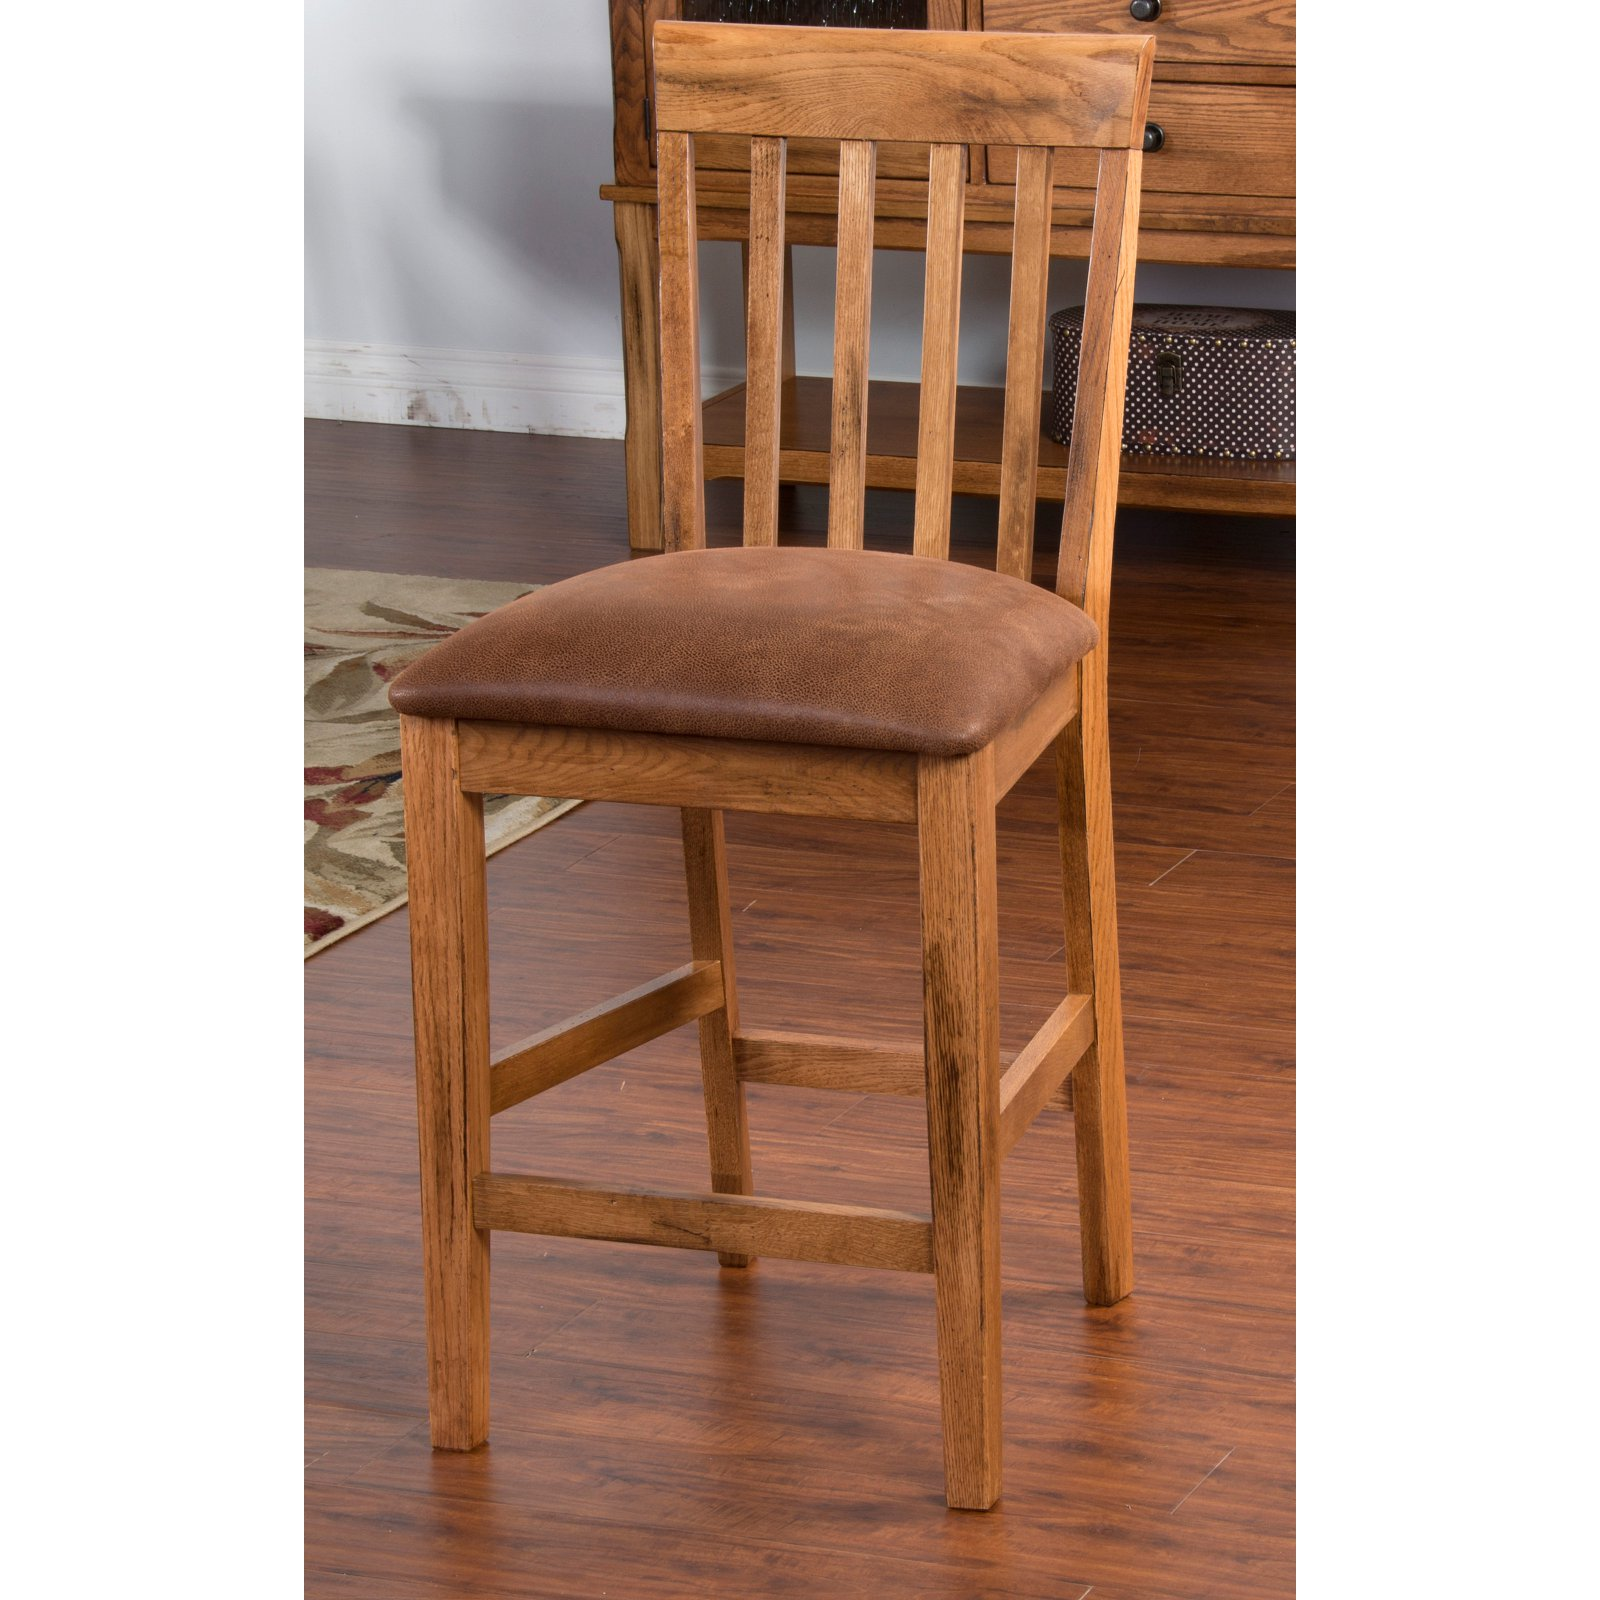 Sunny Designs Sedona 24 in. Cushion Seat Counter Stool